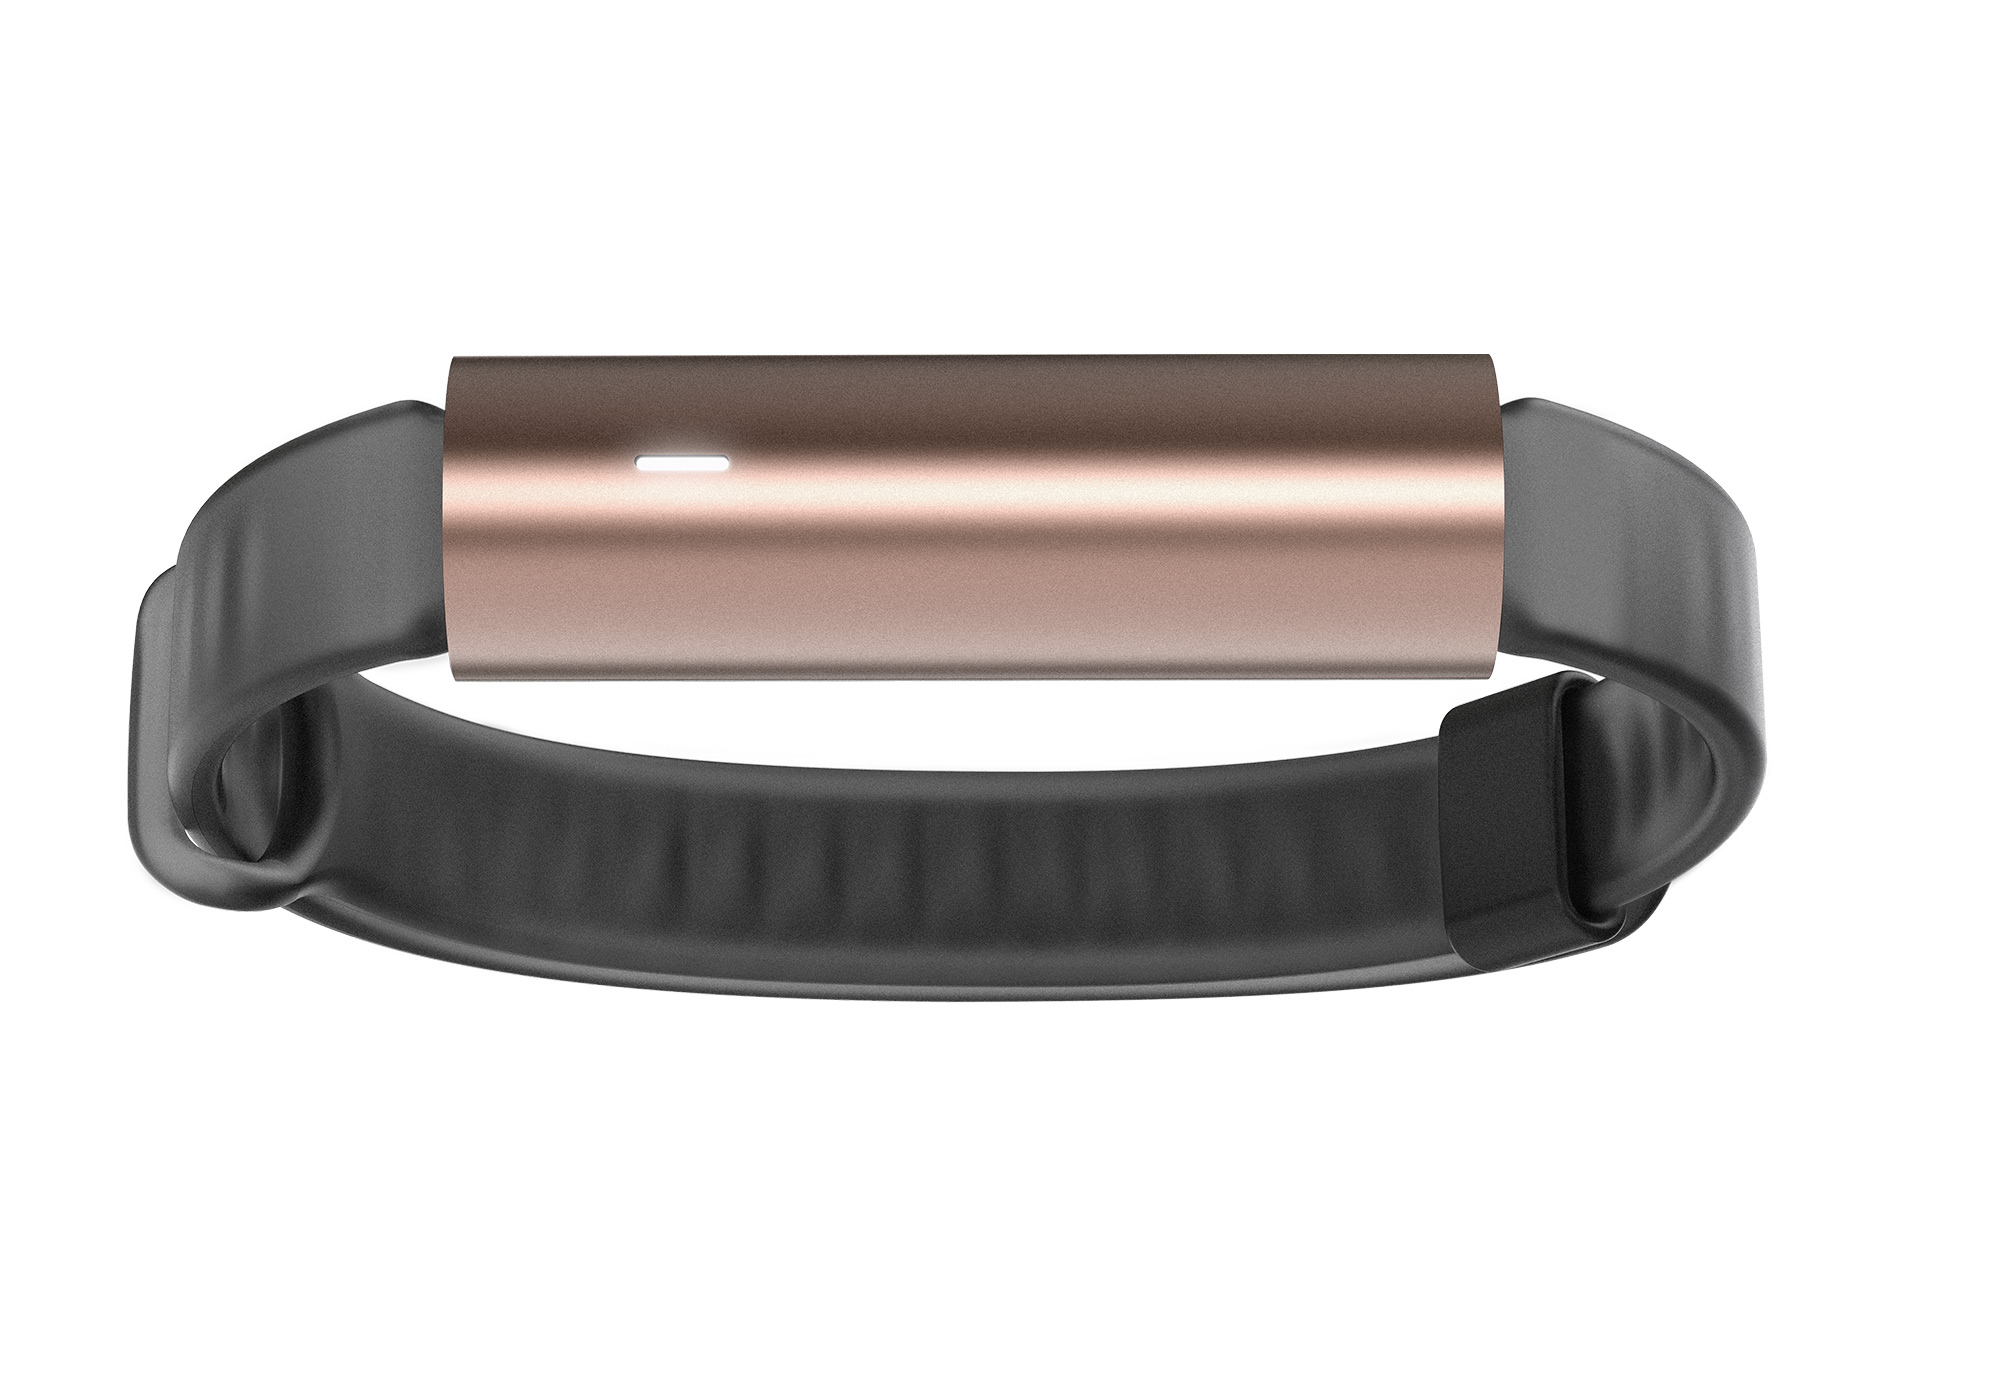 Misfit Ray Fitness & Sleep Tracker + Sport Band (Rose Gold)